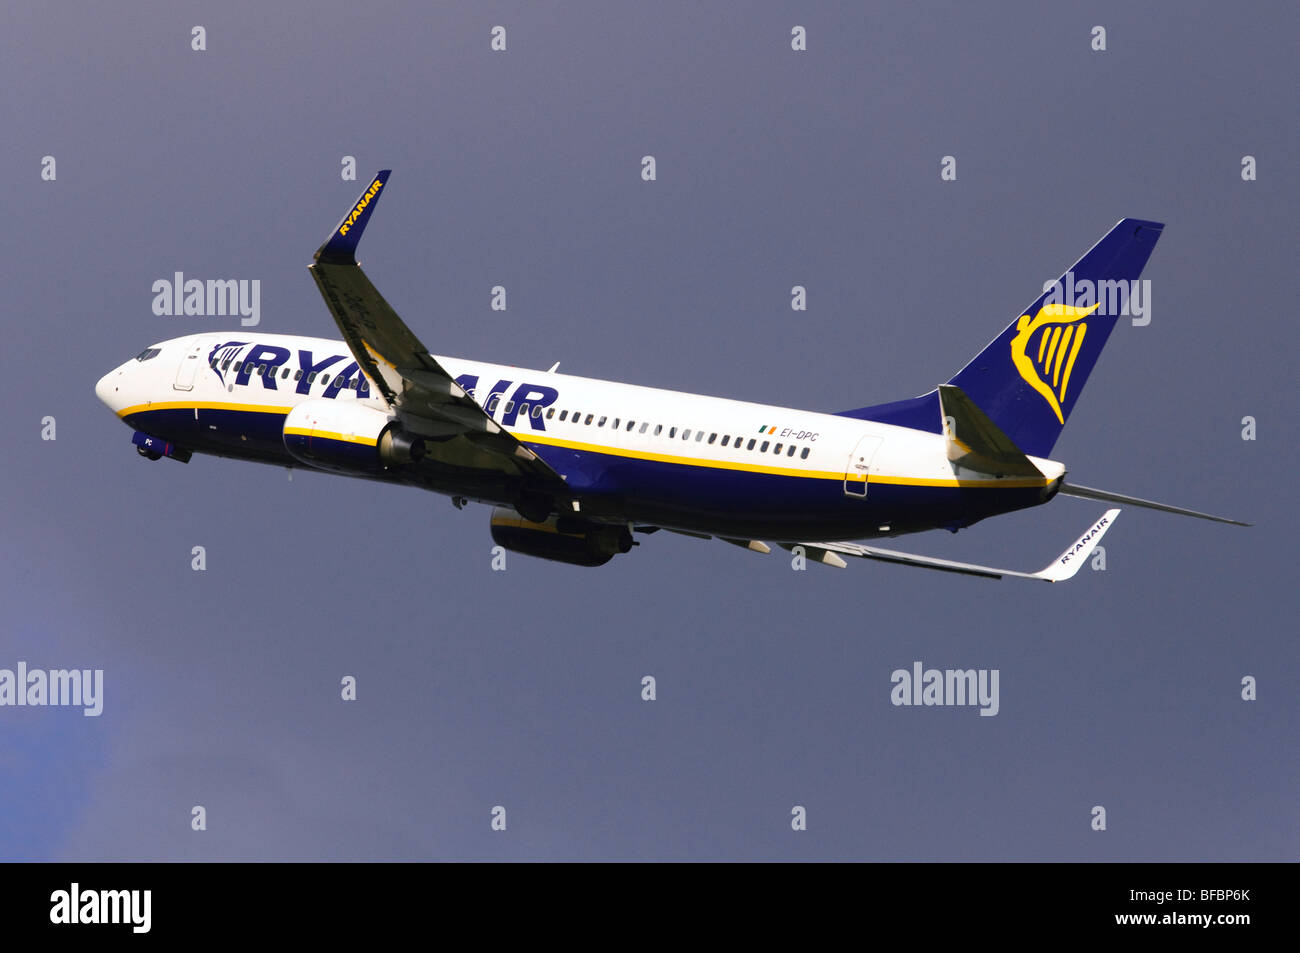 Boeing 737 operated by Ryanair taking off from Birmingham Airport Stock Photo